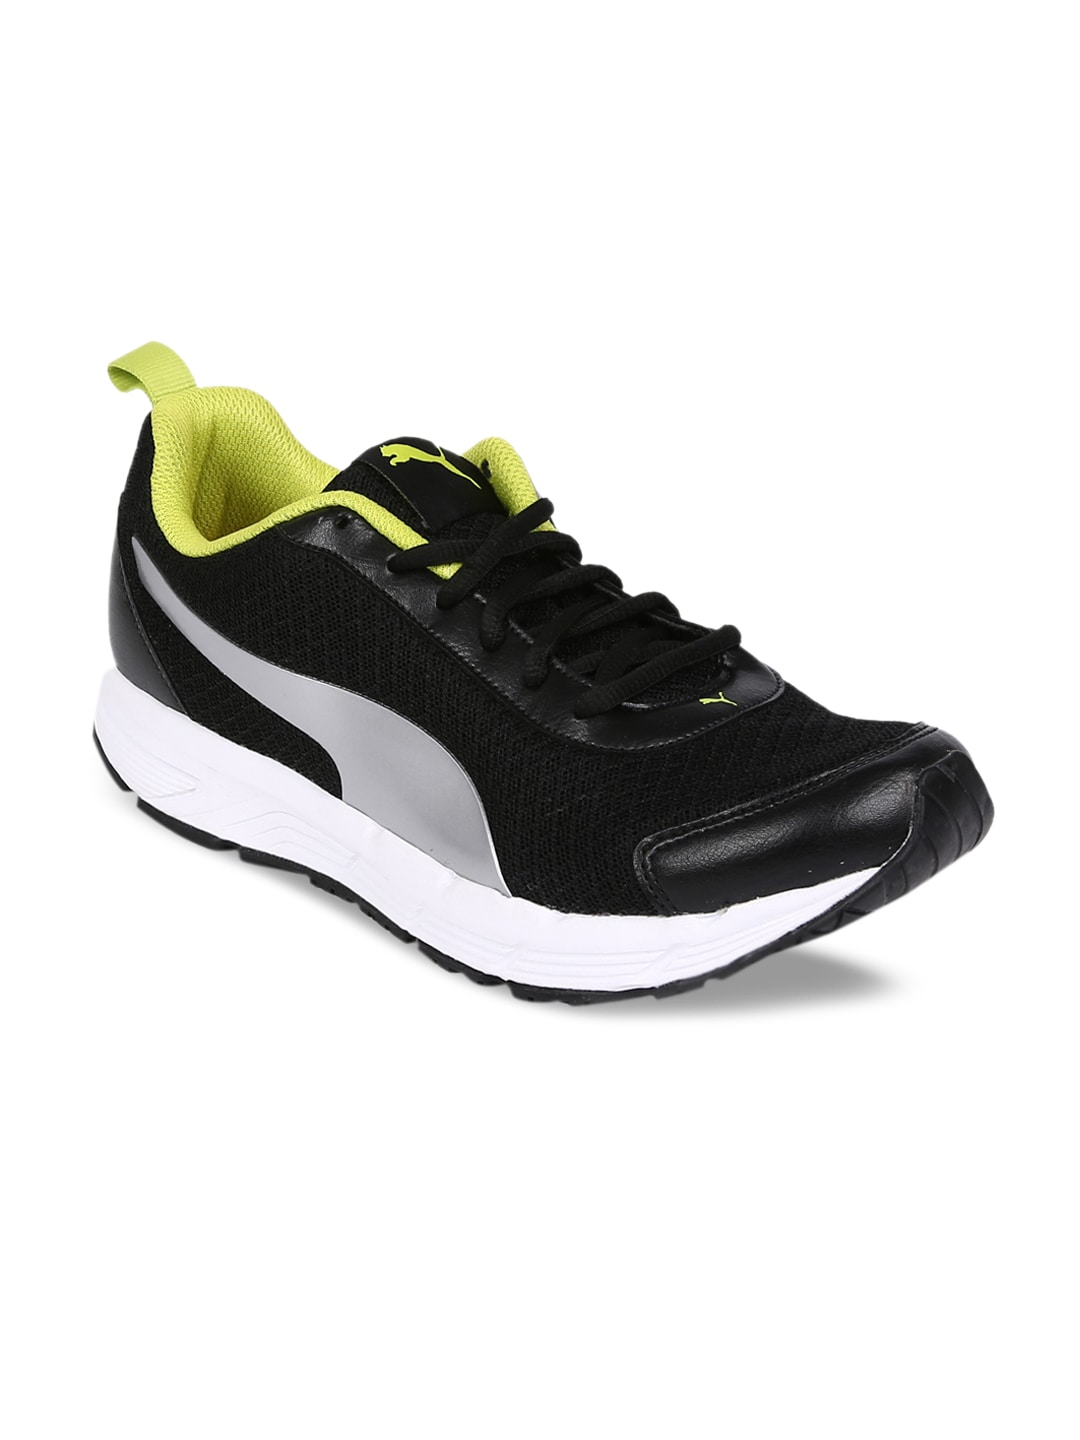 04064225f324b Puma Shoes - Buy Puma Shoes for Men   Women Online in India